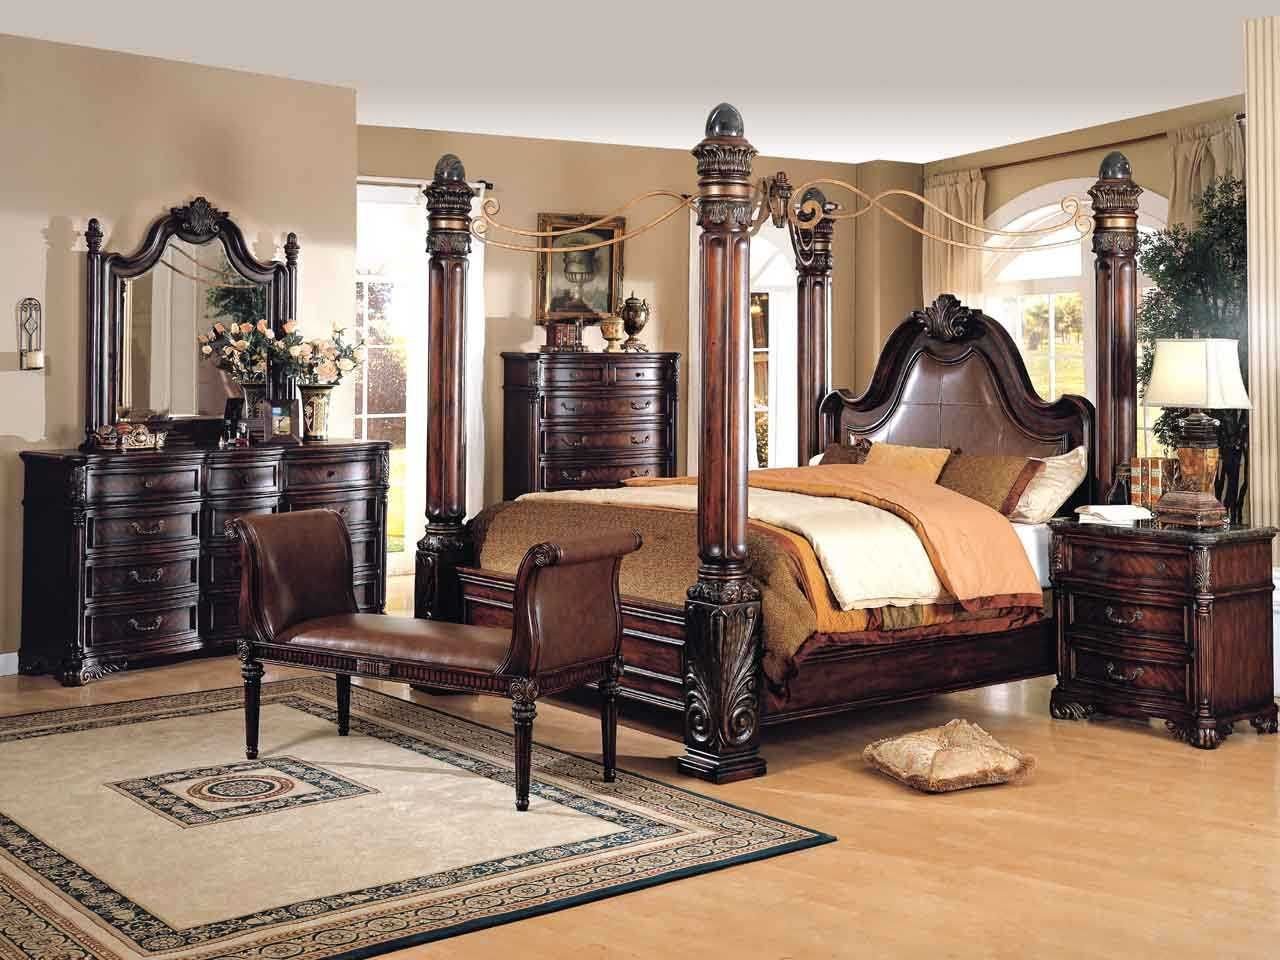 4 Post Canopy Bed Cherry Bedroom Furniture Dark Cherry